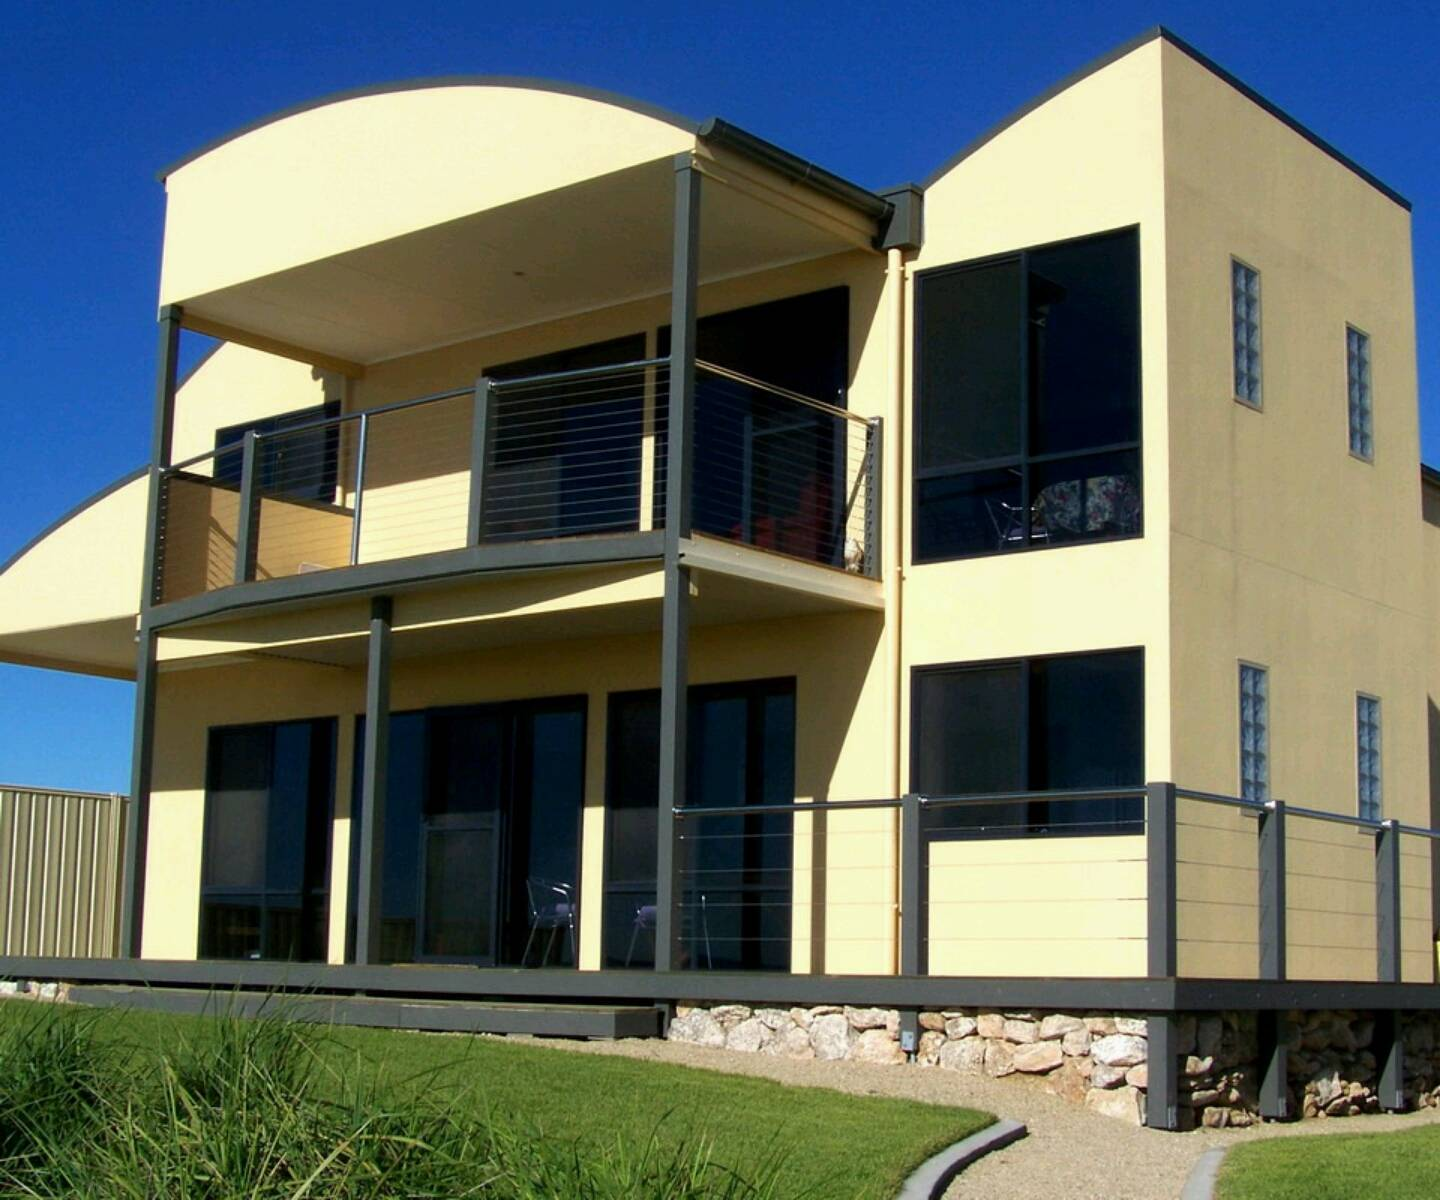 Home Design Ideas Front: Modern Homes Designs Front Views - House Plans